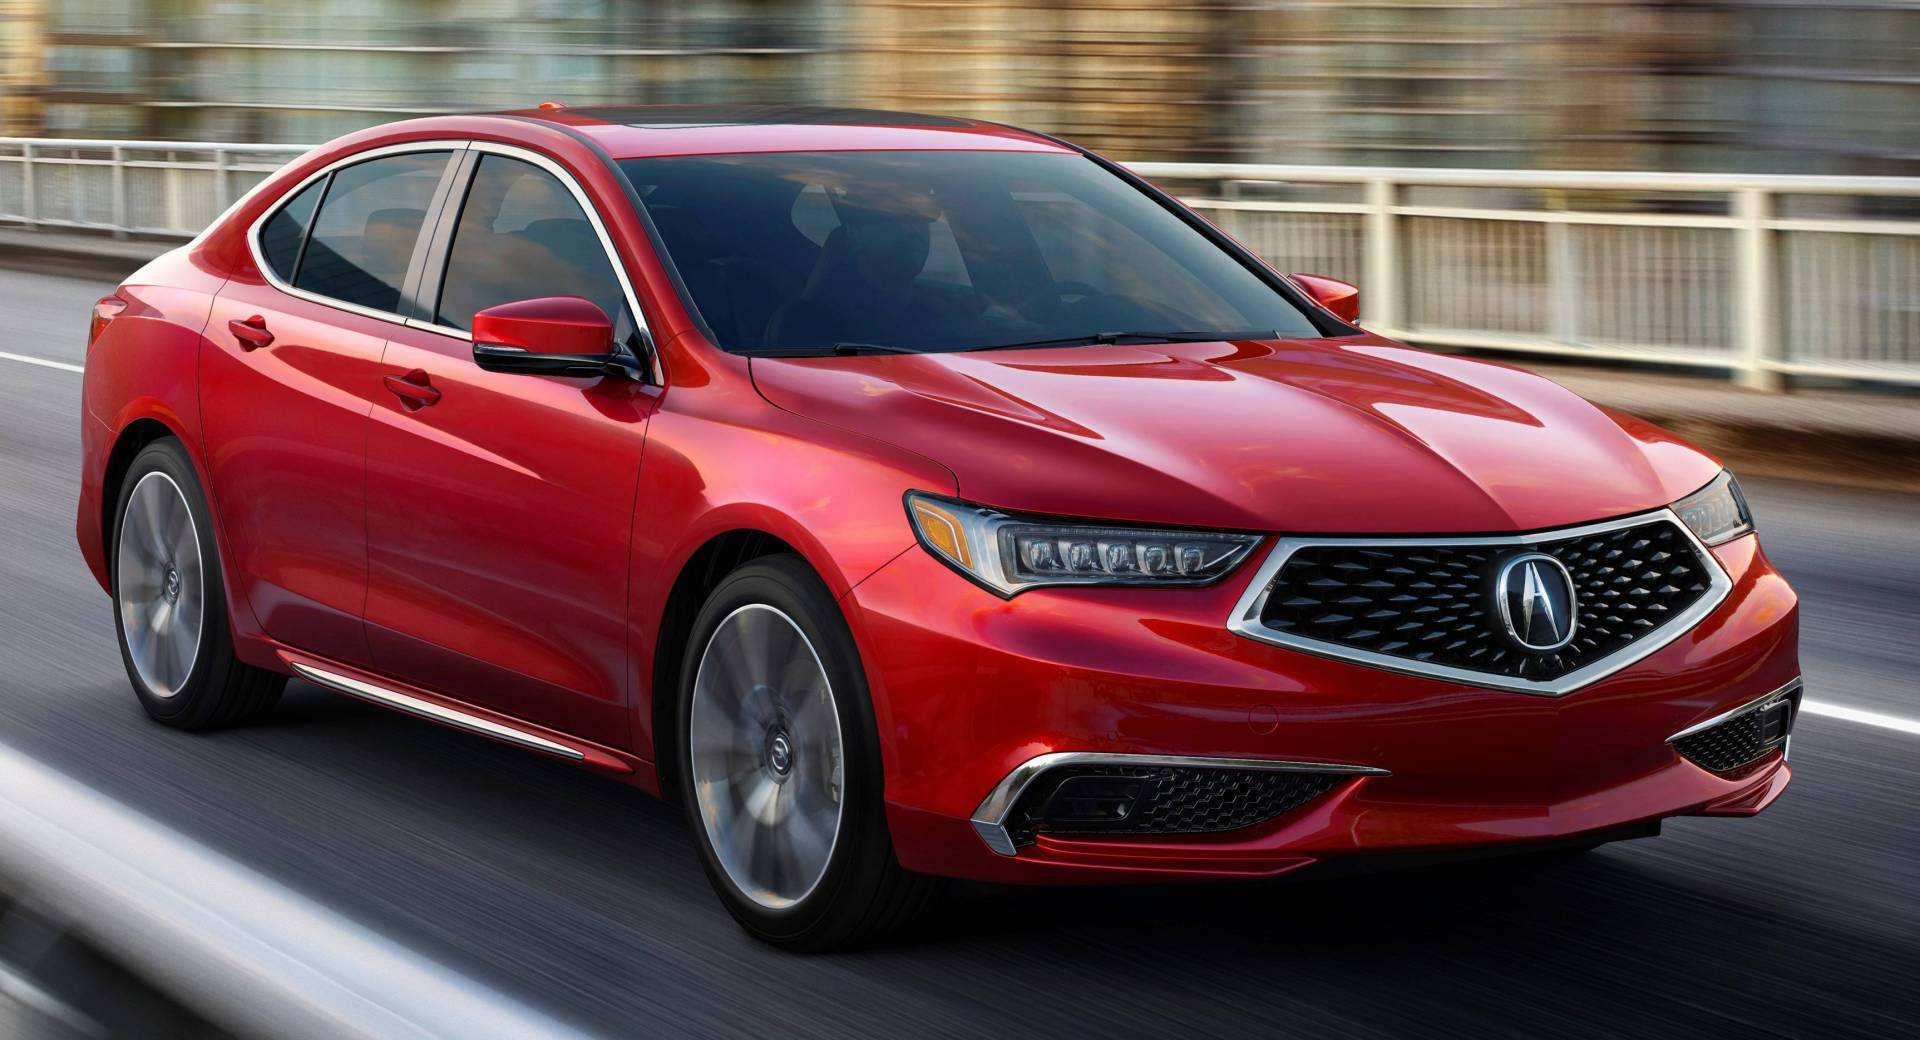 67 Gallery of 2019 Vs 2020 Acura Tlx First Drive by 2019 Vs 2020 Acura Tlx